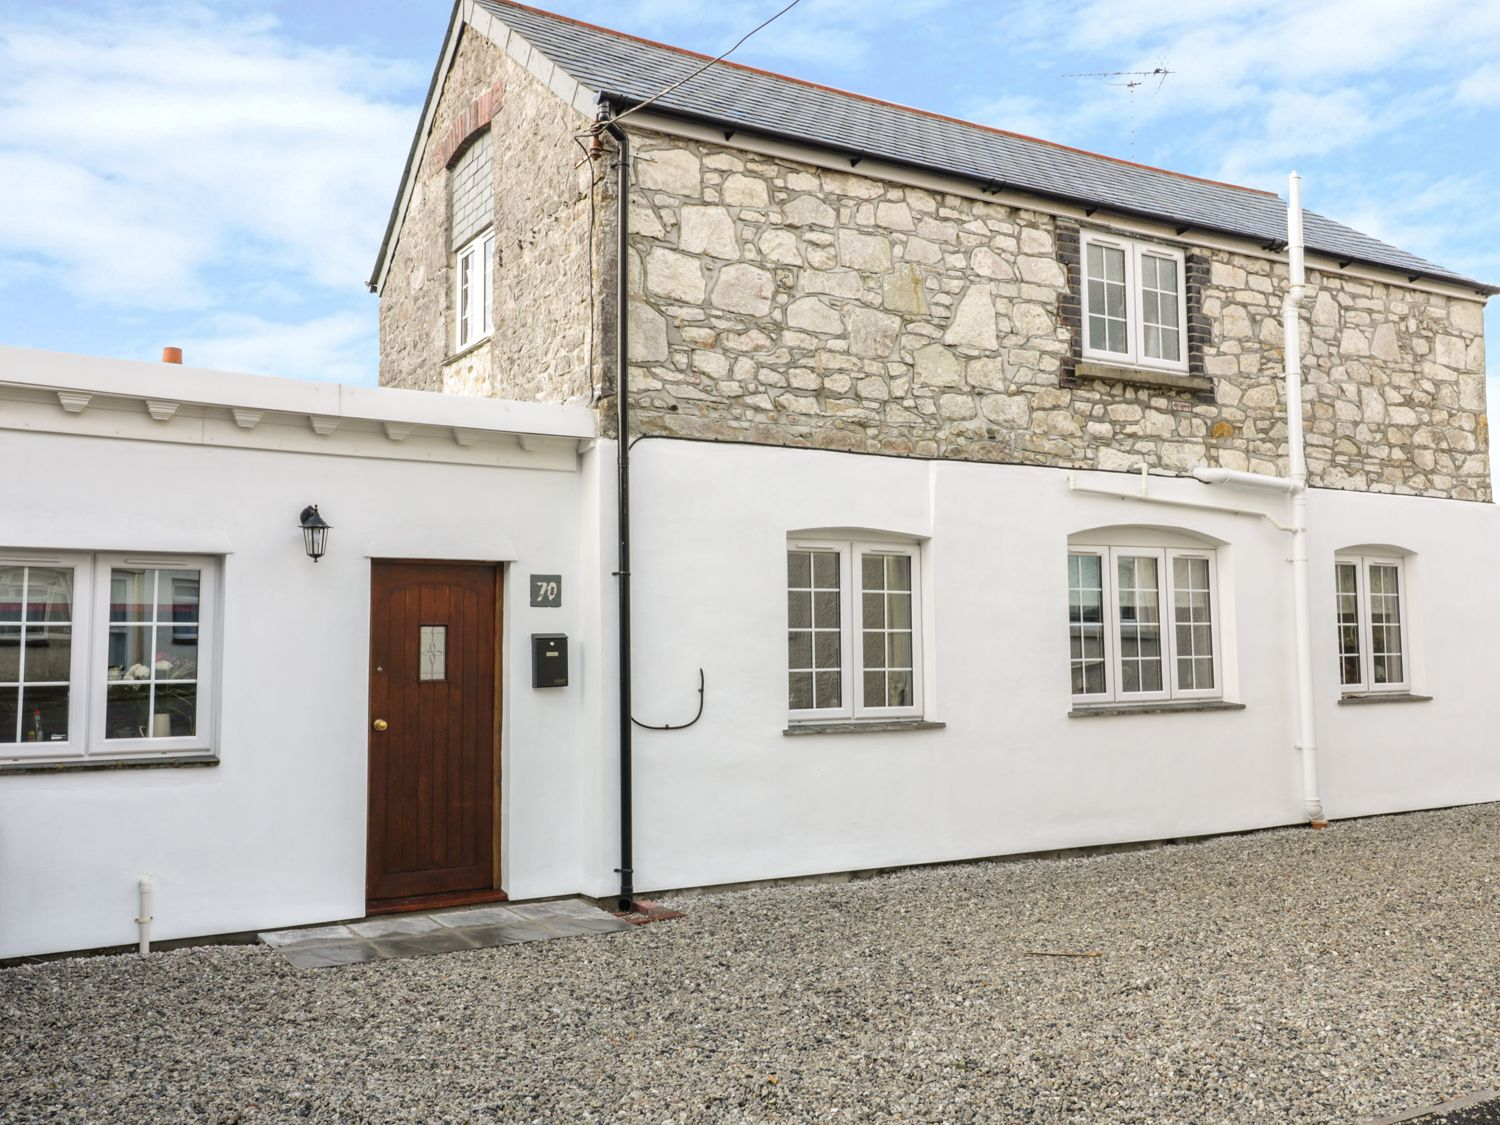 Bakers Cottage, Newquay, Cornwall